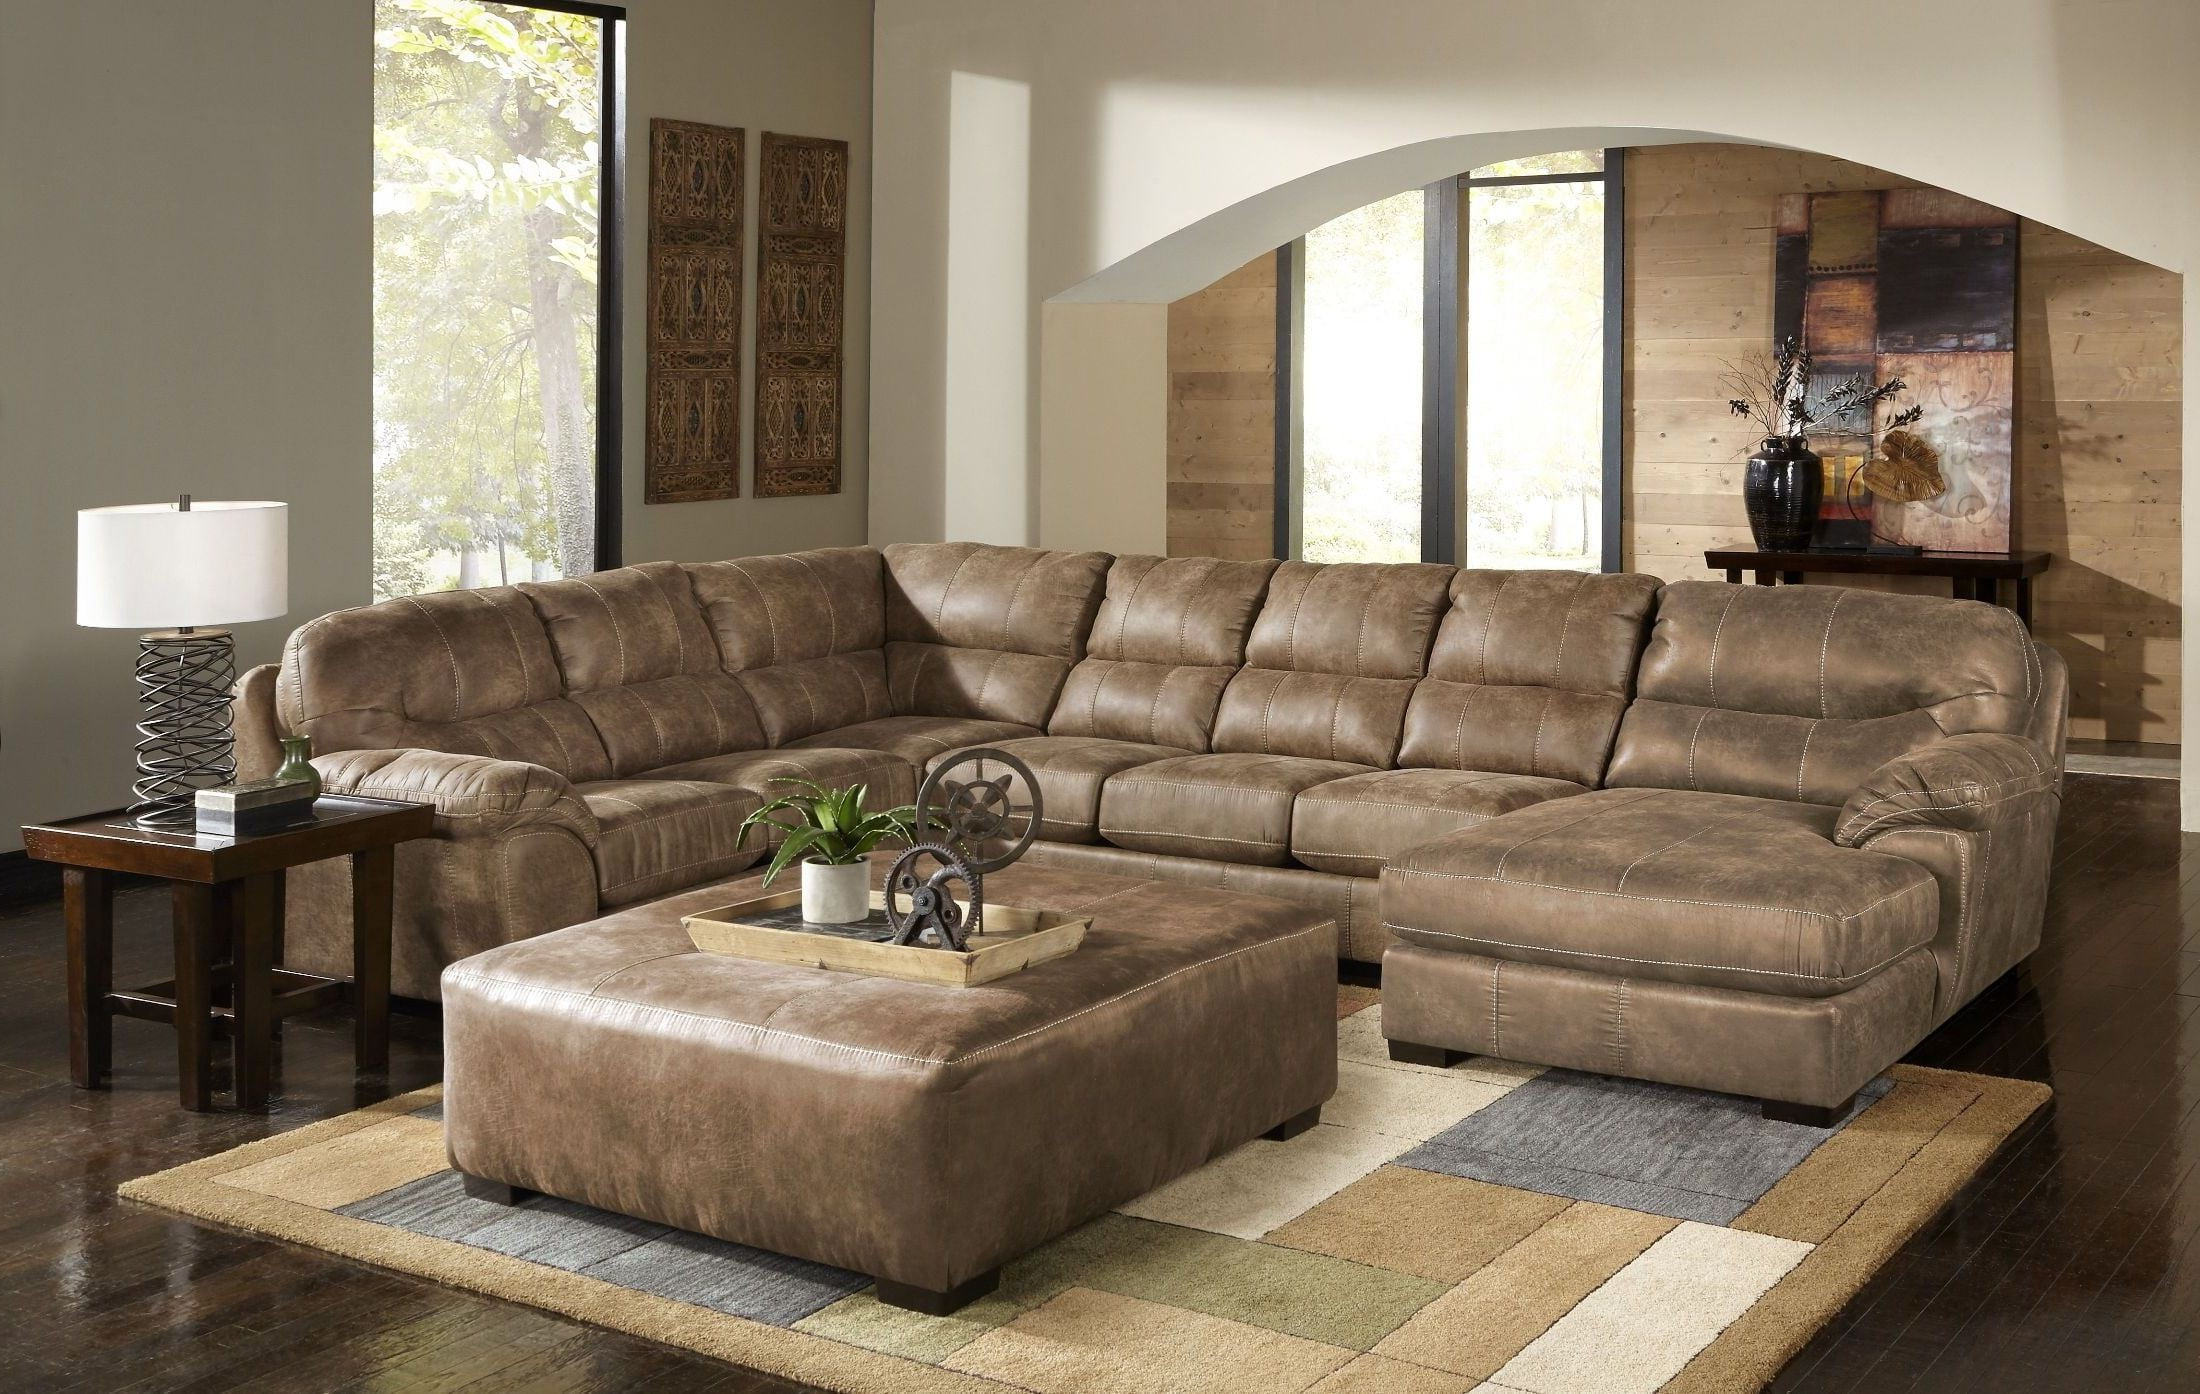 Best And Newest Grant Silt Laf Chaise Sectional, 4453 75 122749302749, Jackson With Regard To Avery 2 Piece Sectionals With Raf Armless Chaise (View 12 of 20)